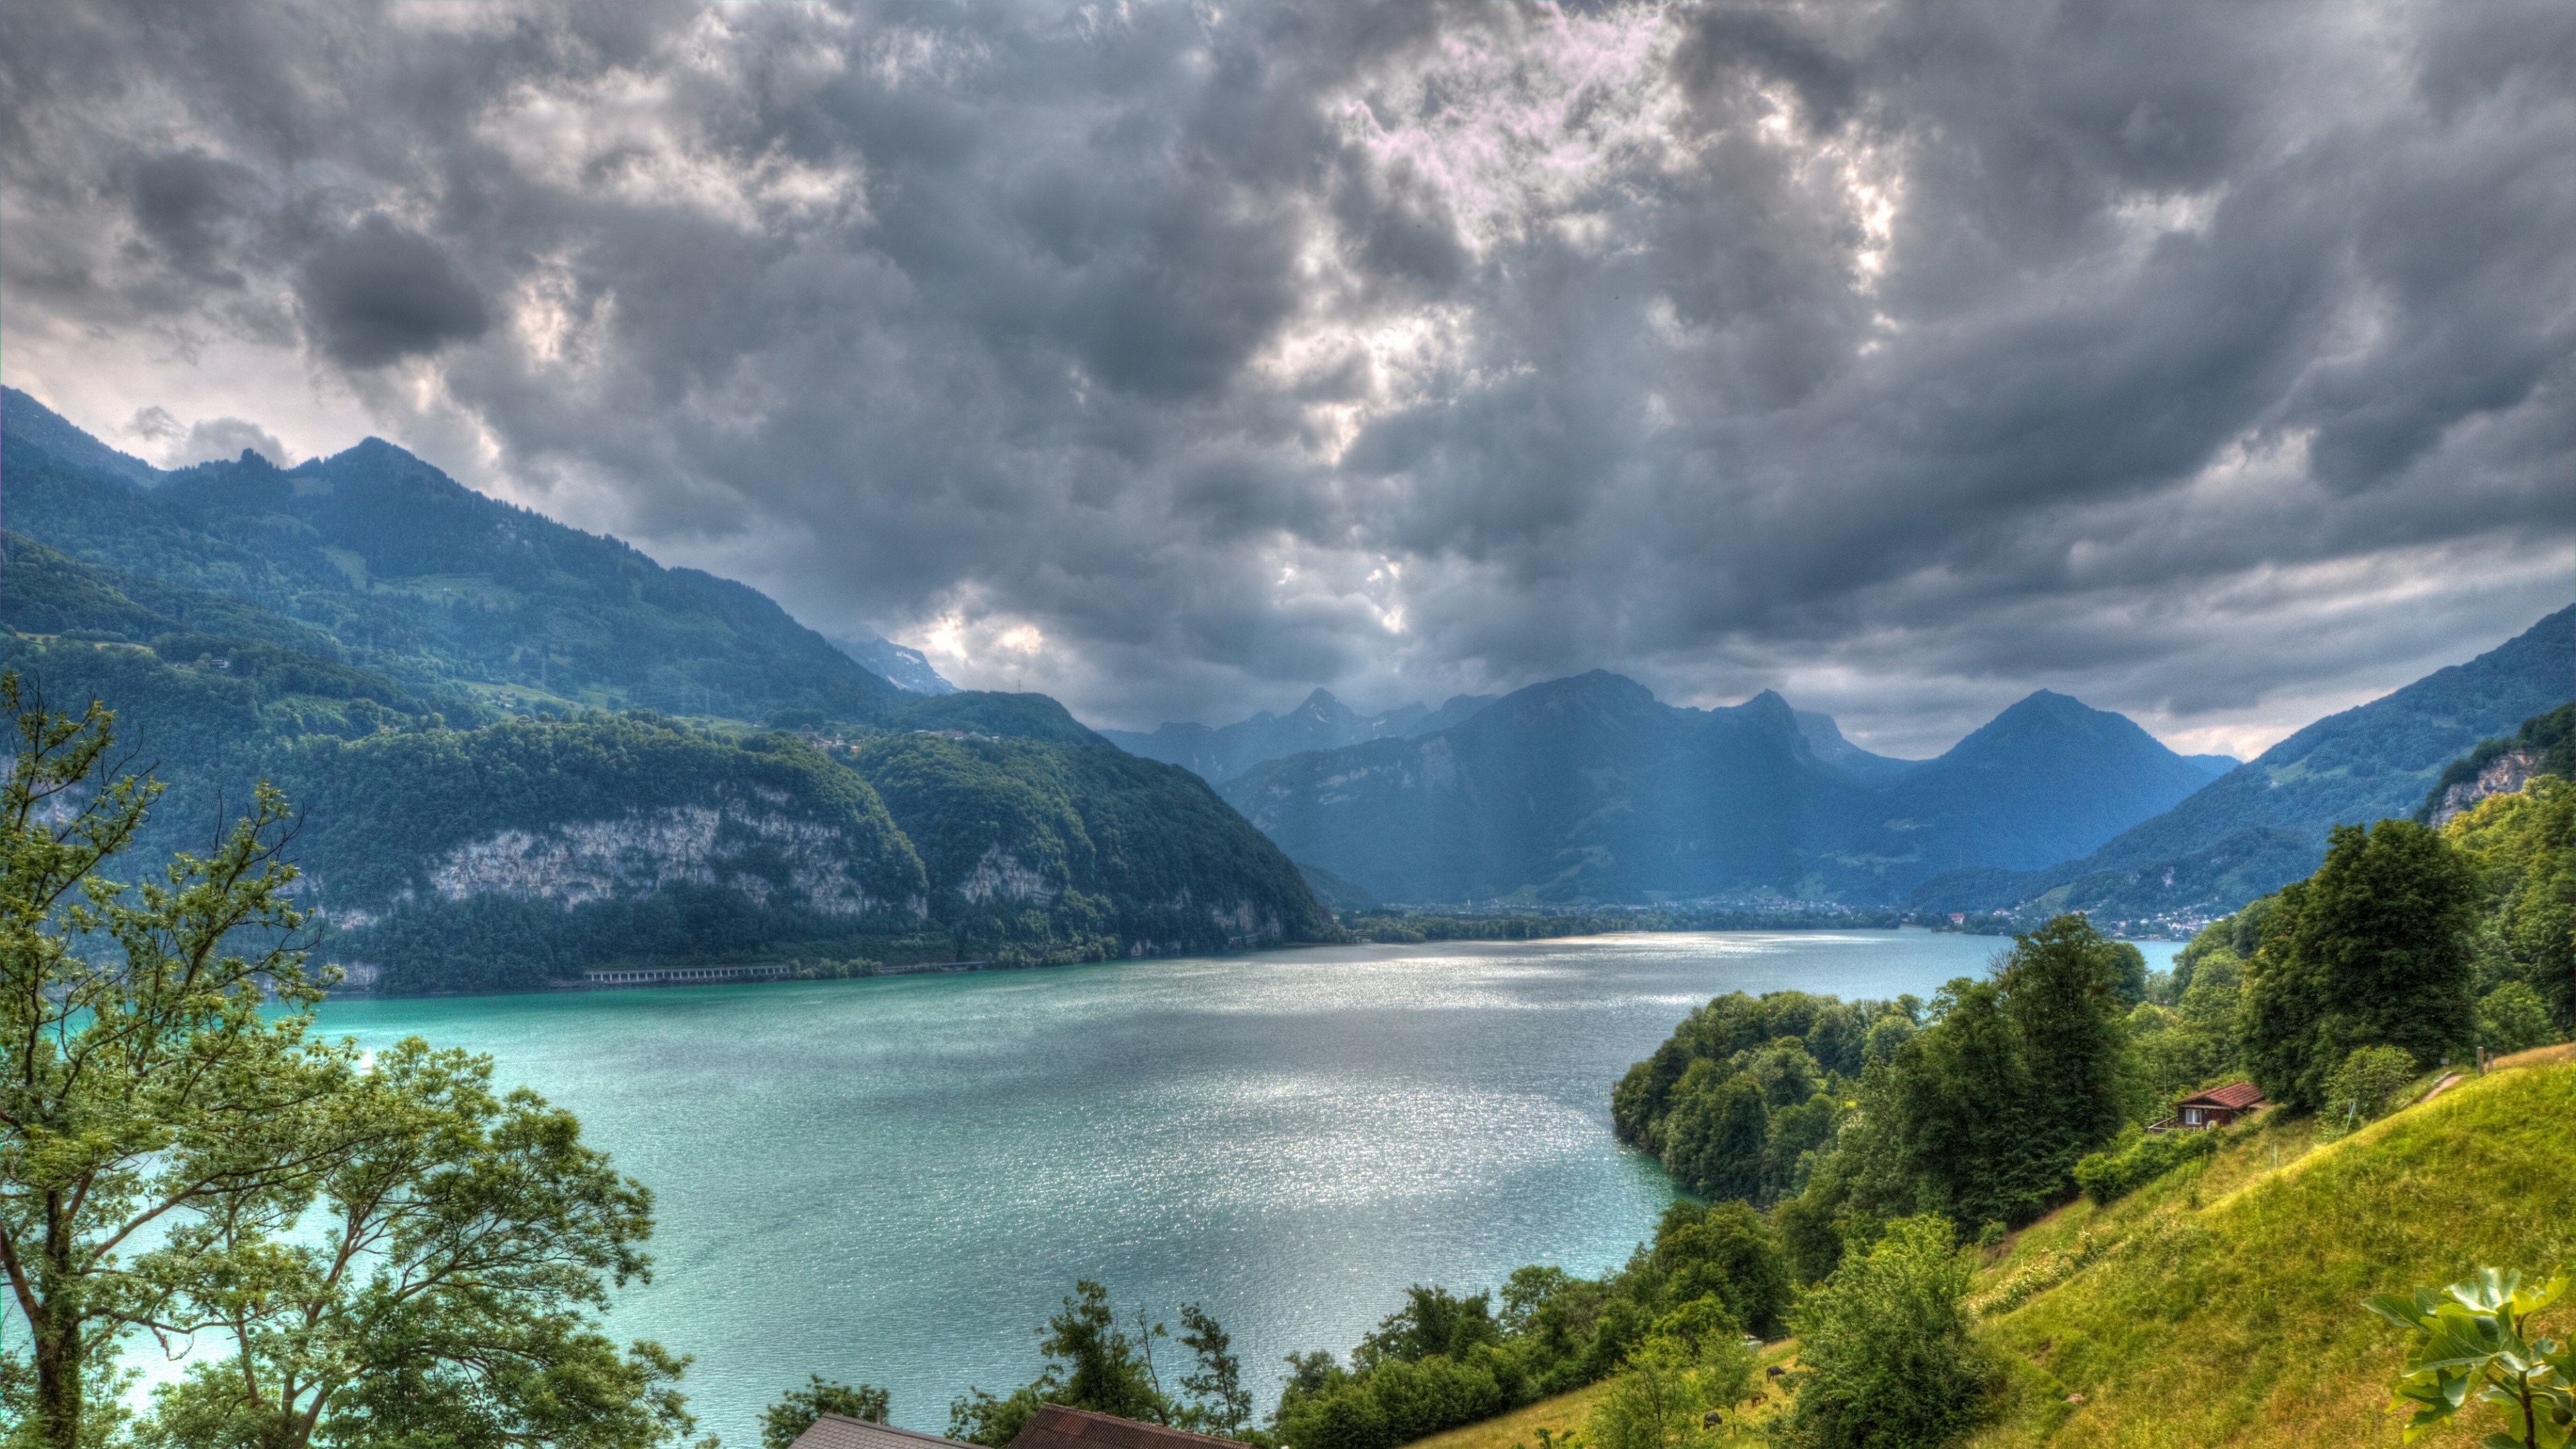 Wallpaper Walensee lake in Switzerland